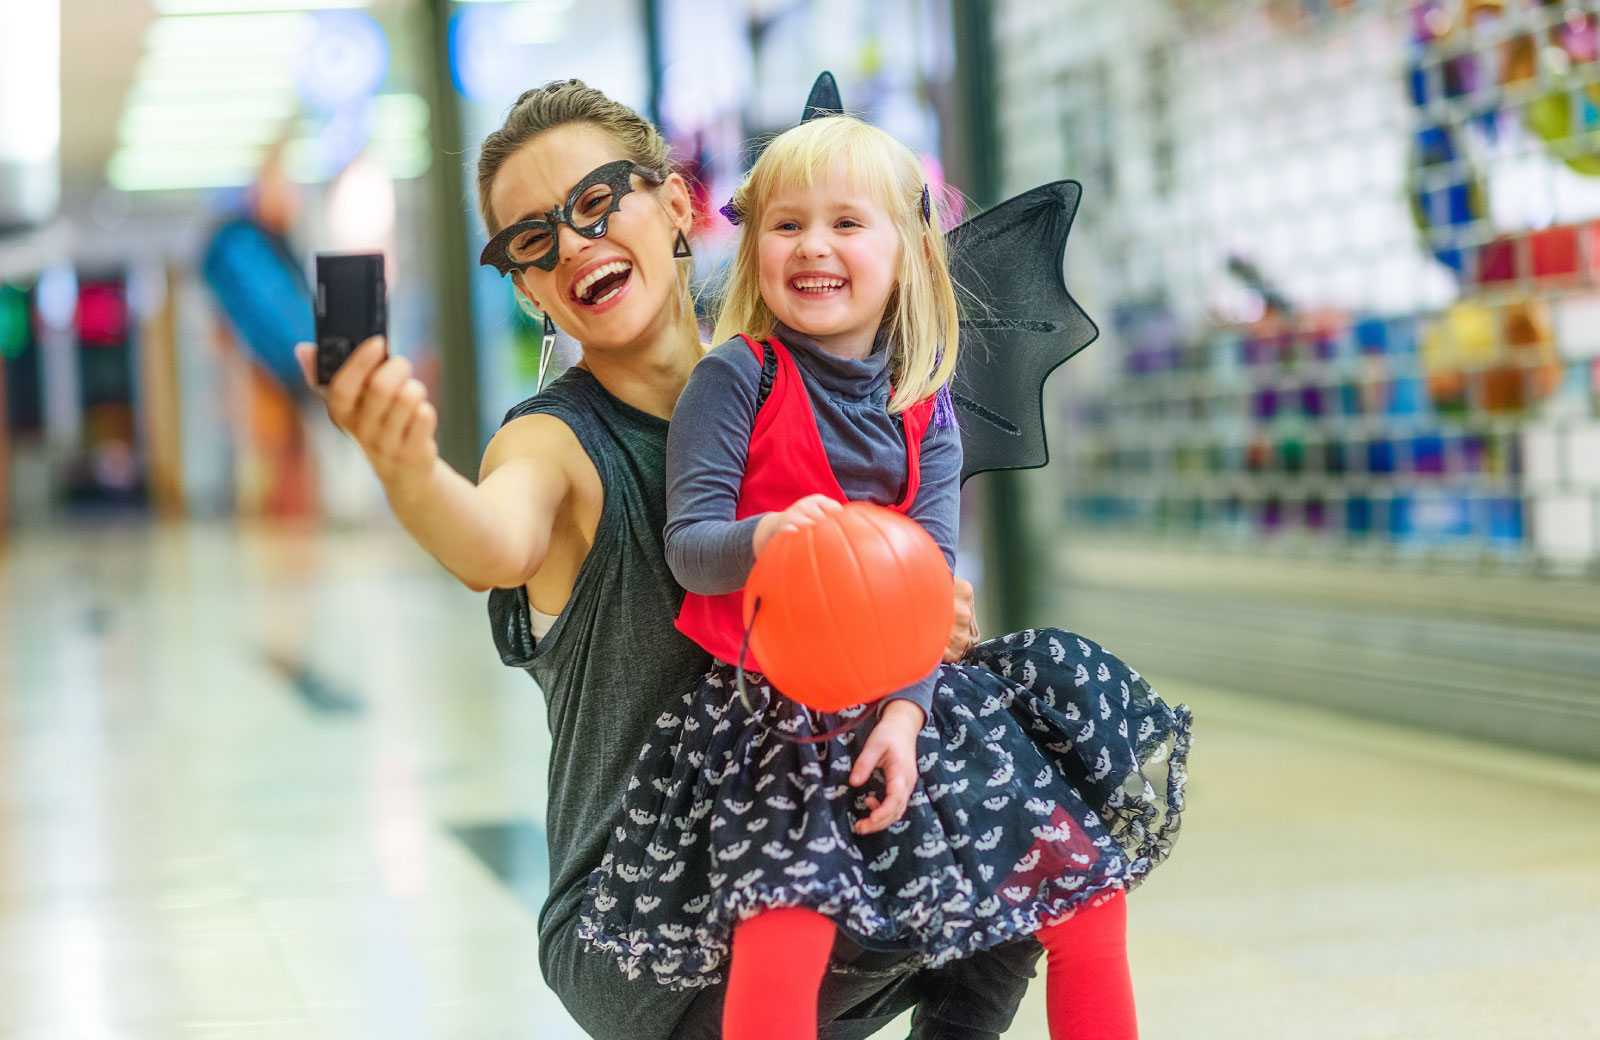 mother and daughter in halloween costumes taking a selfie